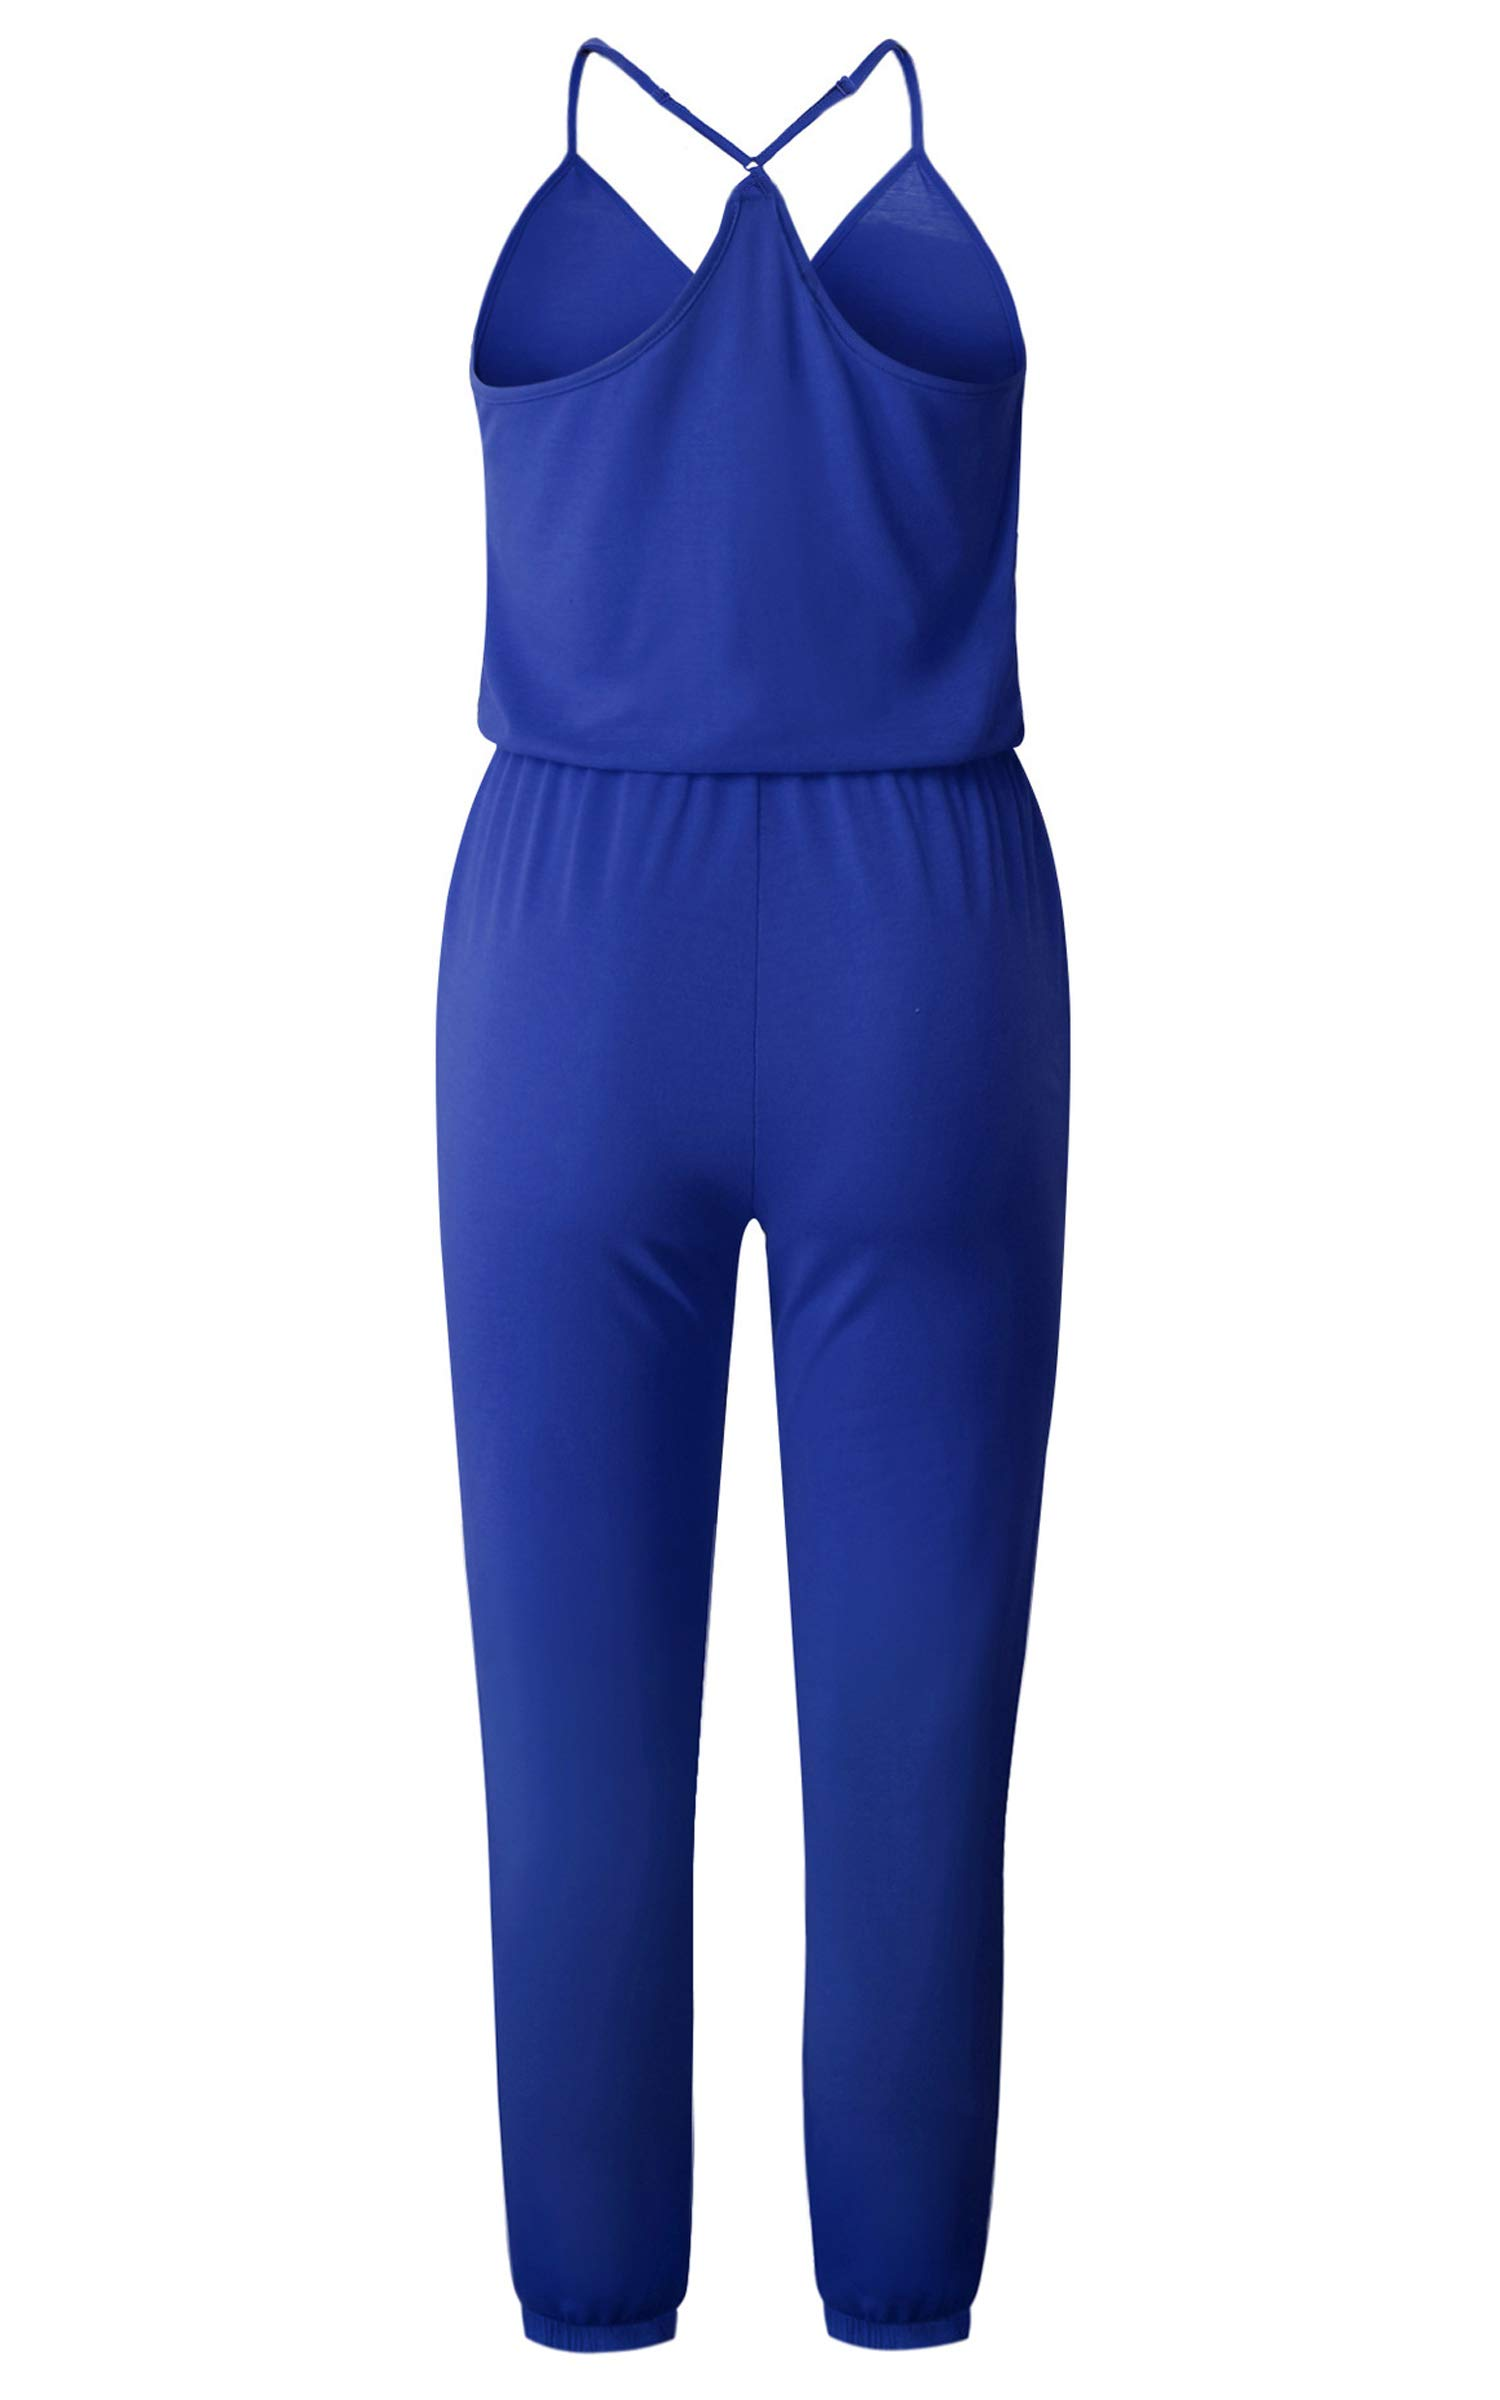 ECOWISH Women's V Neck Spaghetti Strap Drawstring Waisted Long Pants Jumpsuit Rompers Blue M by ECOWISH (Image #4)